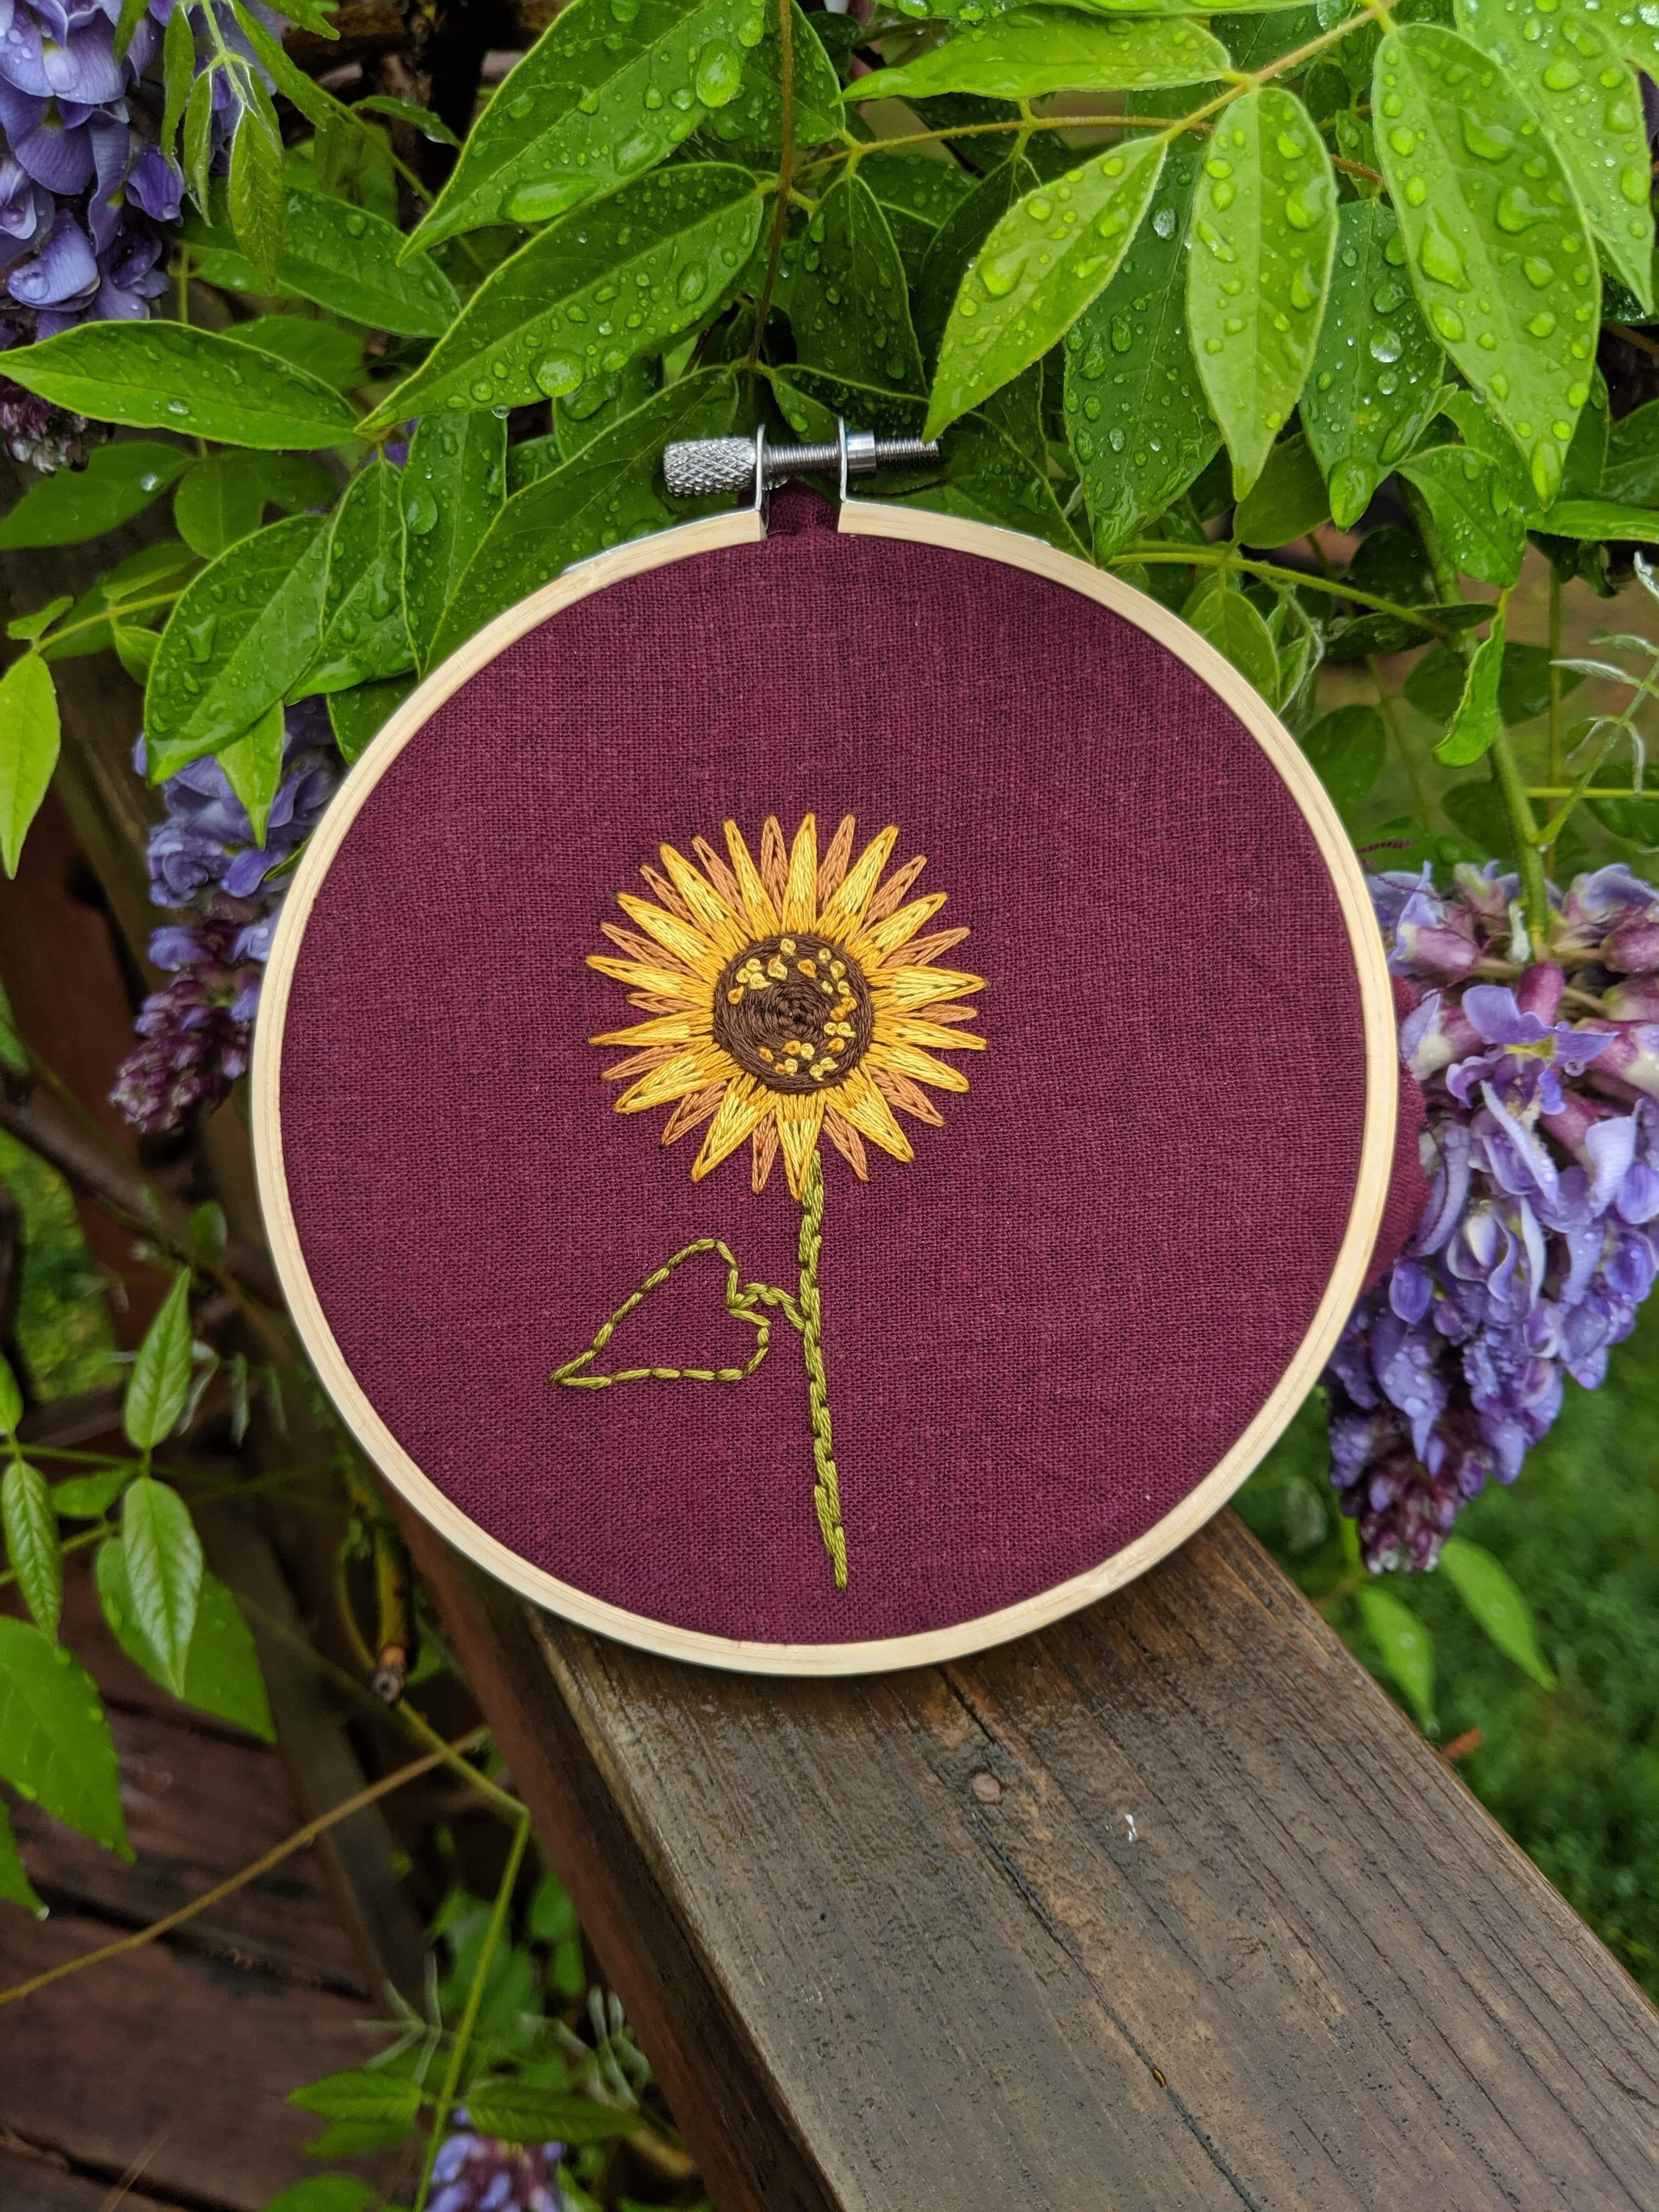 Beginning Embroidery - Instructor: Laura TrethawayDate: Friday, Sept.6, 1:00-4:00 (Half Day Class)Cost: $45Maximum spots: 6No experience necessary.